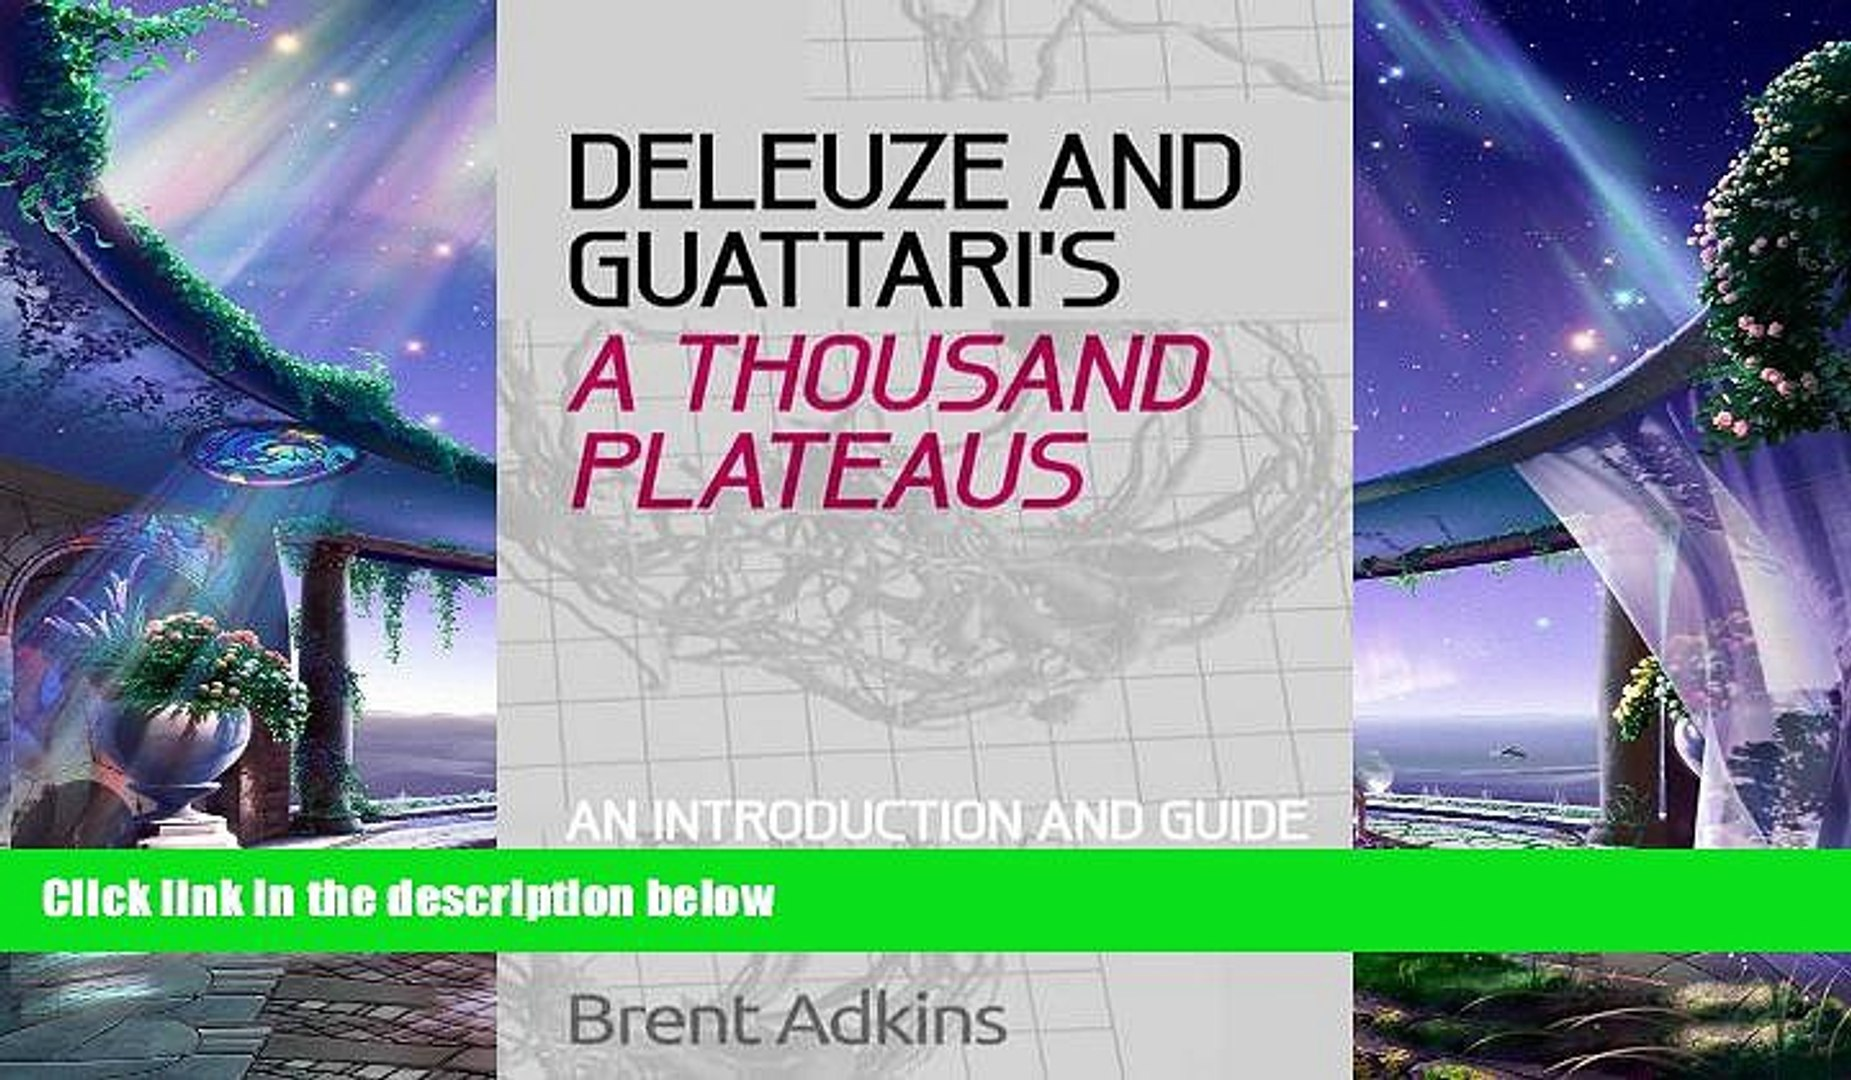 there is  Deleuze and Guattari s A Thousand Plateaus: A Critical Introduction and Guide